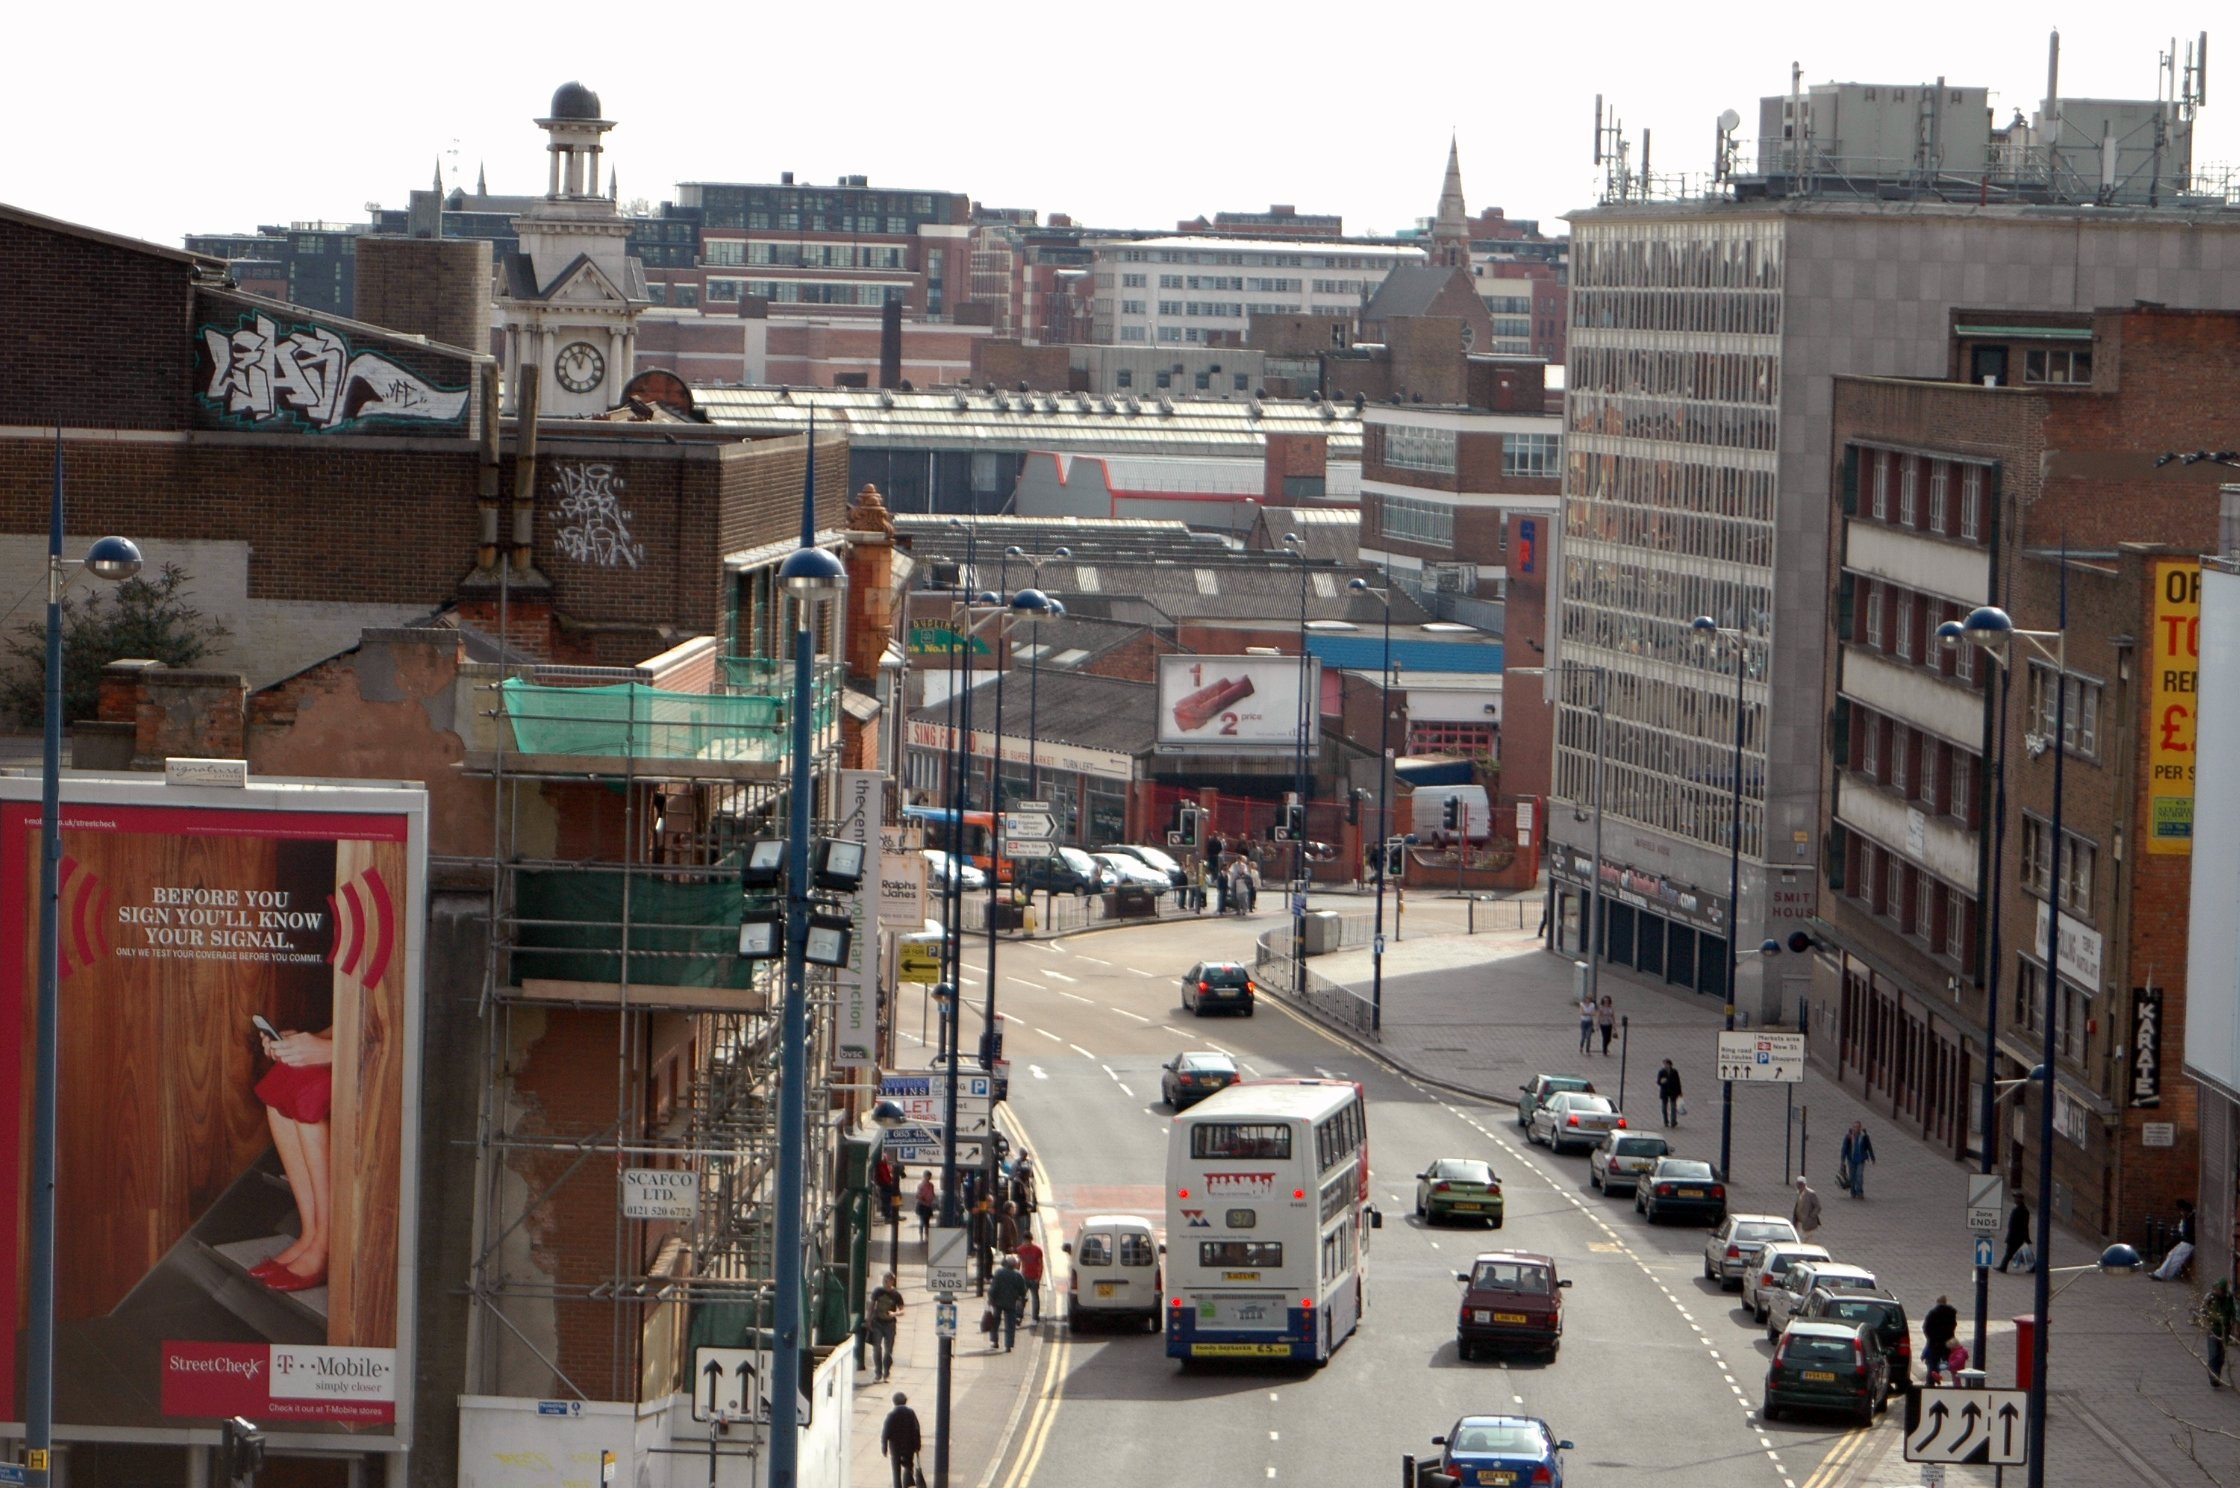 Digbeth_High_Street,_Birmingham